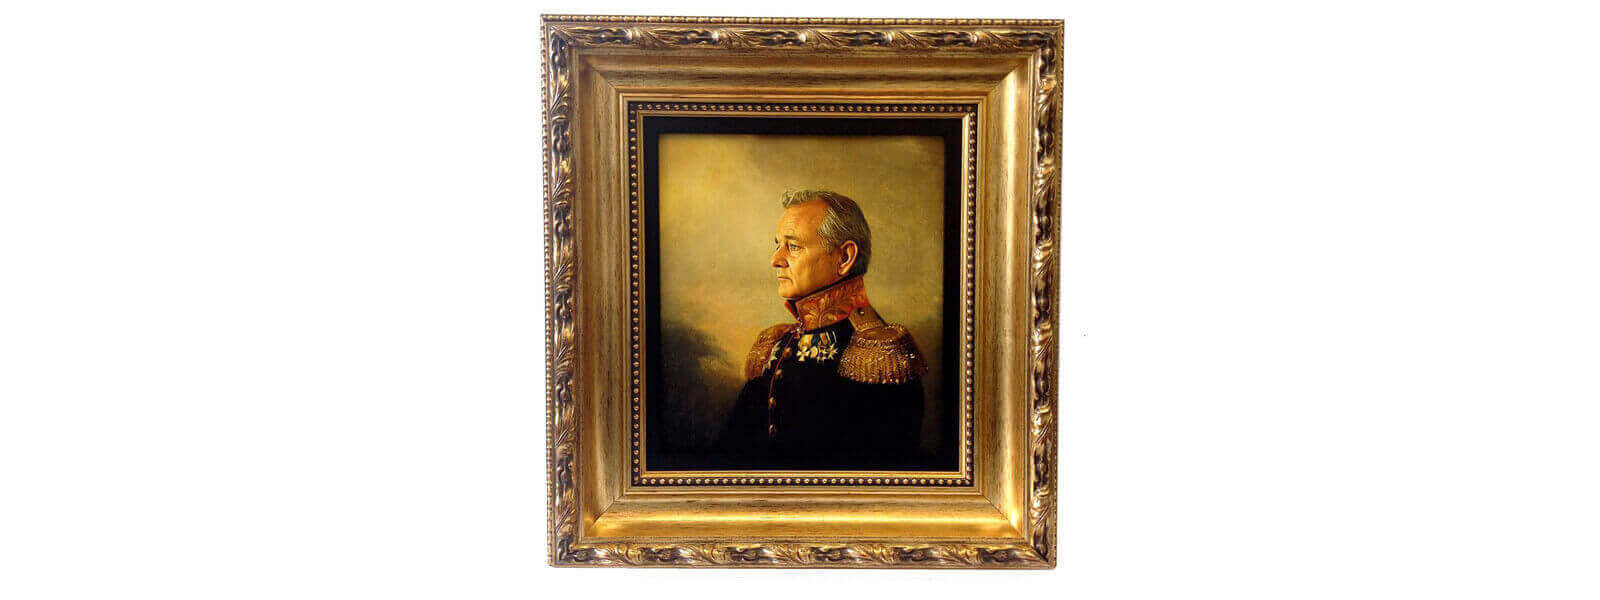 HS-framed-painting-bill-murray